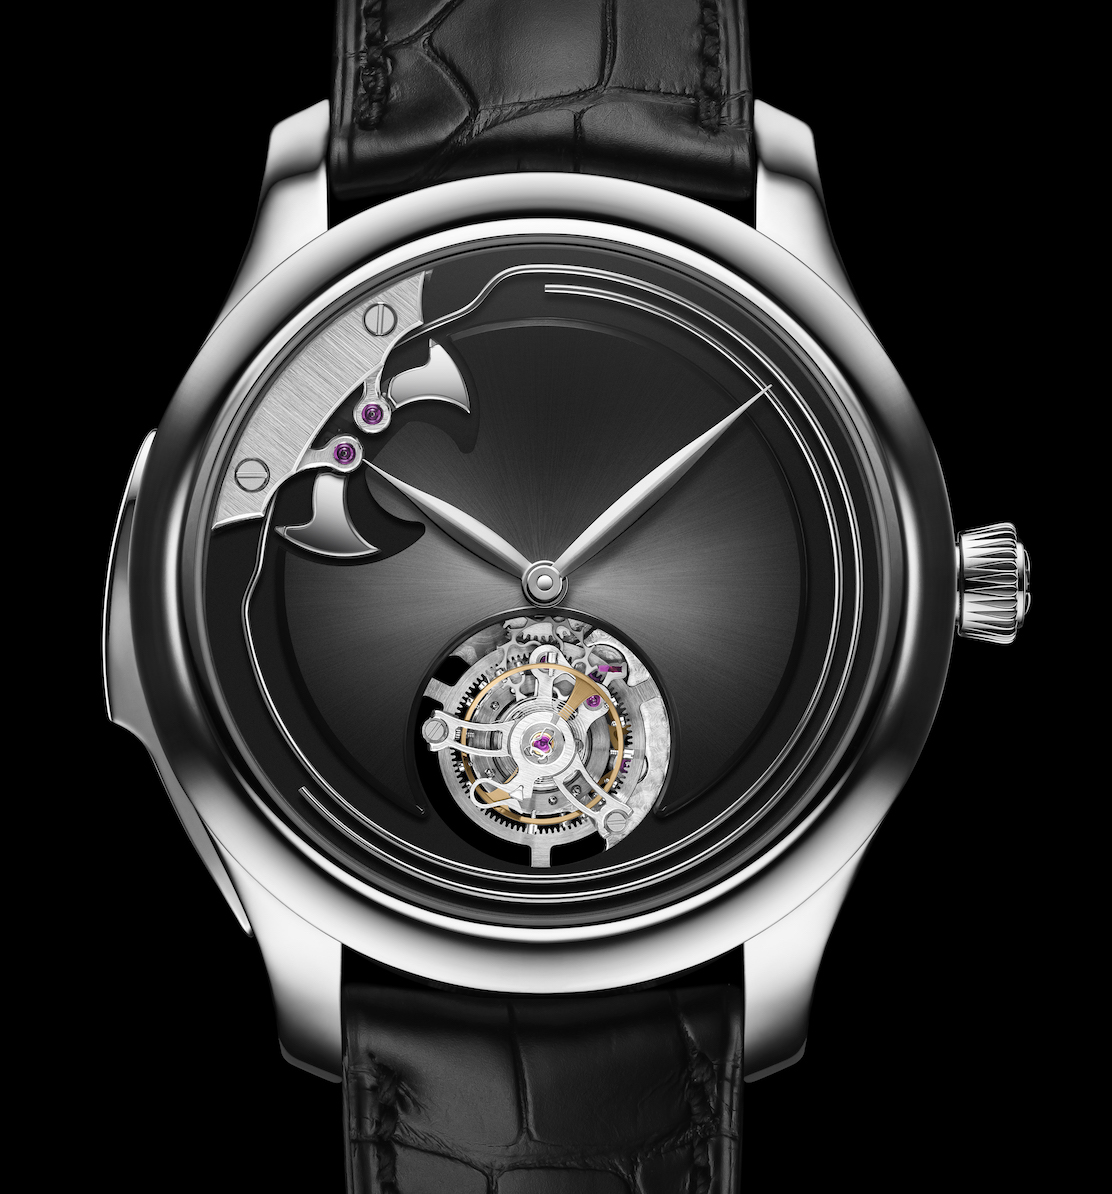 Moser Endeavour Concept Minute Repeater Tourbillon, Moser Tourbillon, Moser Endeavor Concept Minute Repeater Tourbillon, Moser Minute Repeater Tourbillon